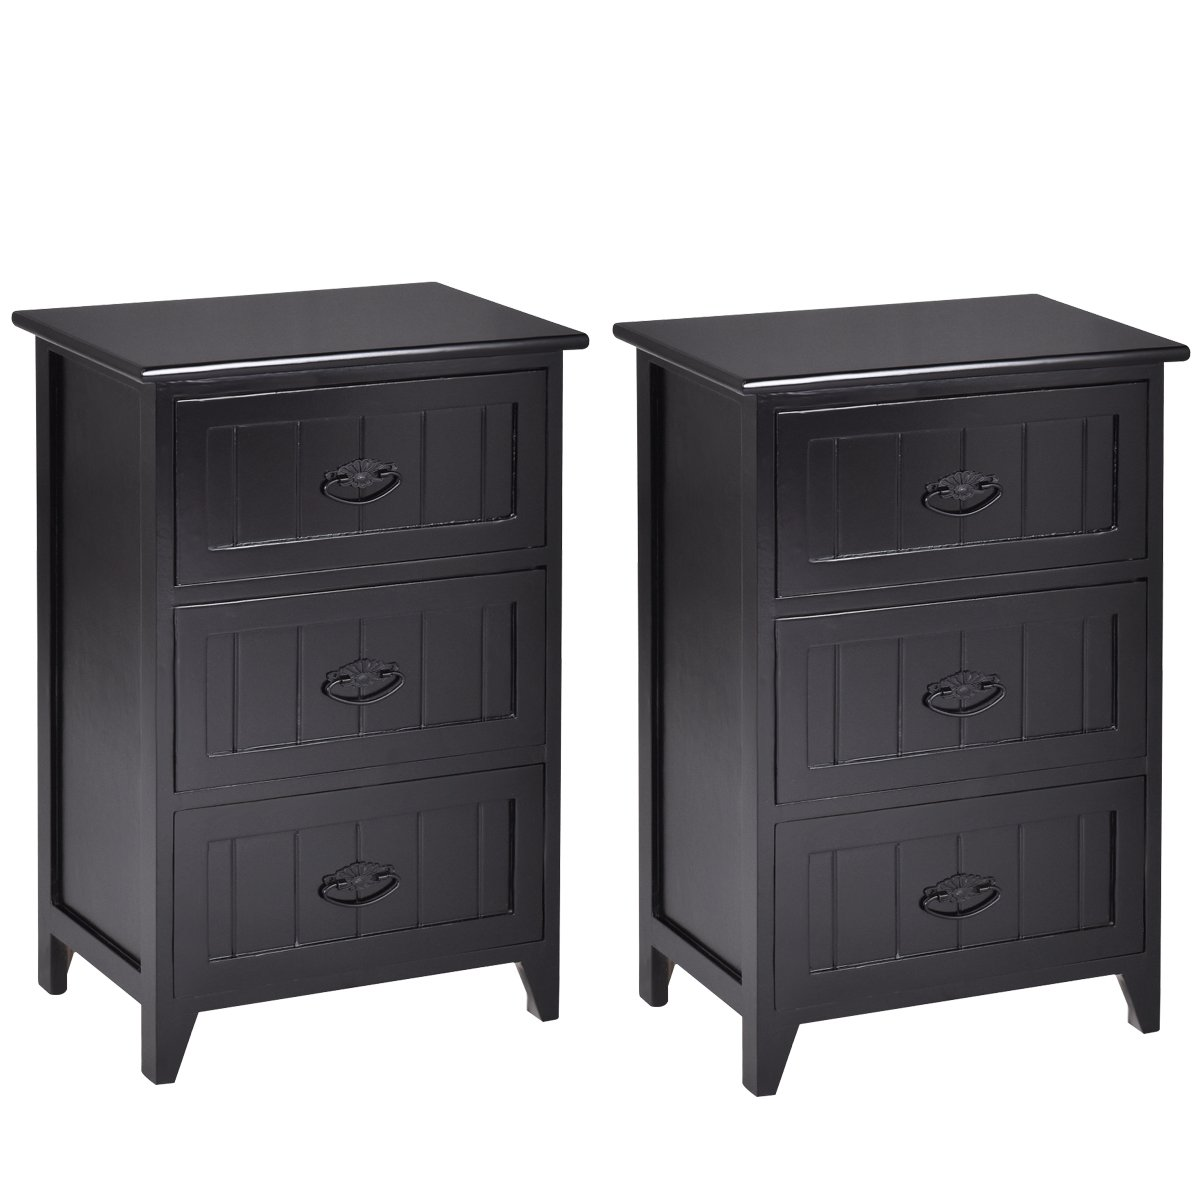 giantex drawers nightstand end table bedroom storage winsome timmy accent black solid structure and stable frame elegant style organizer wooden side bedside outdoor bar set temple